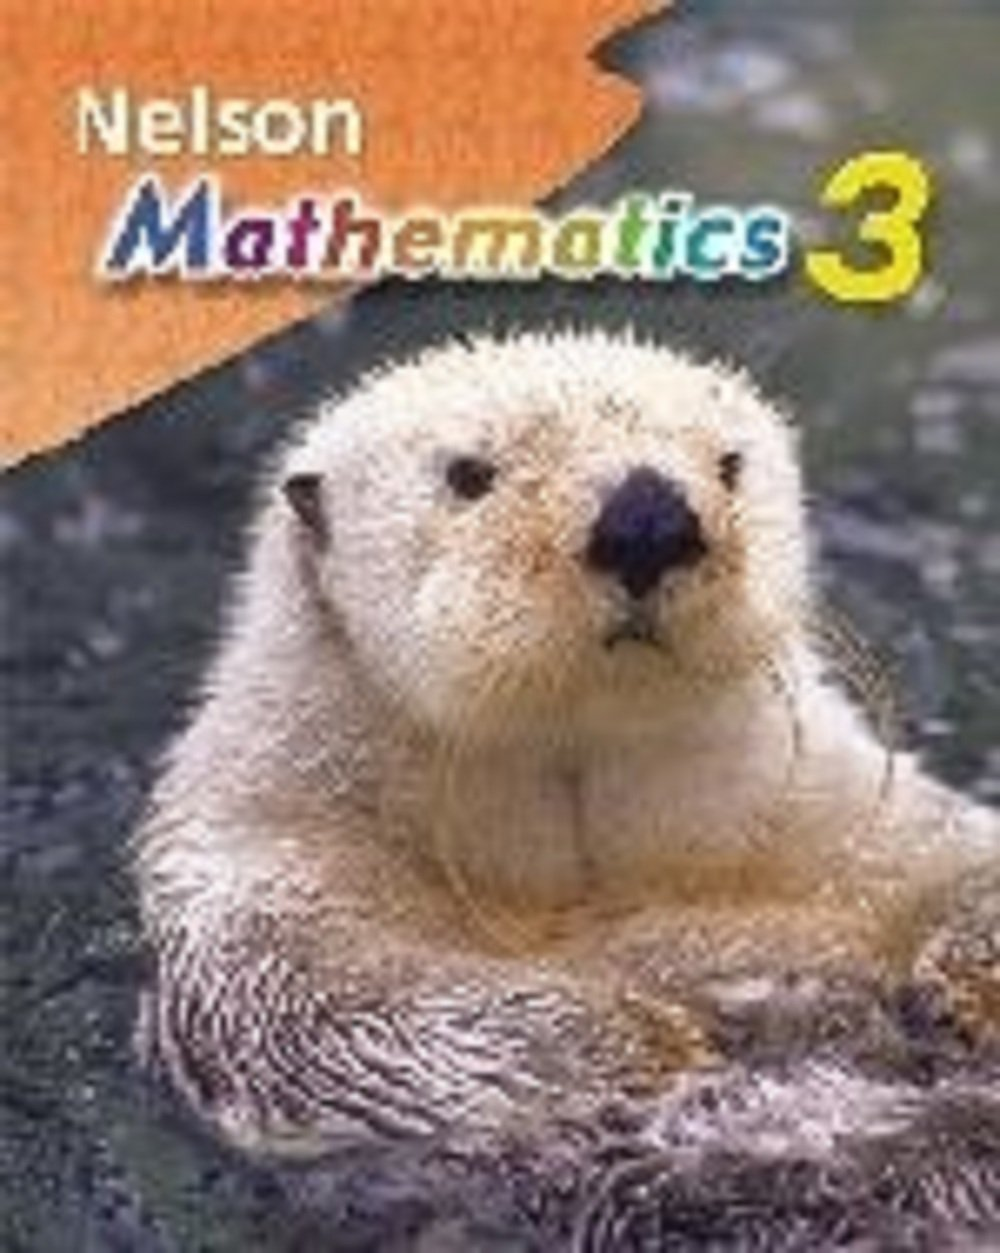 Nelson Mathematics 3 Workbook: unknown: 9780176200930: Amazon.com ...